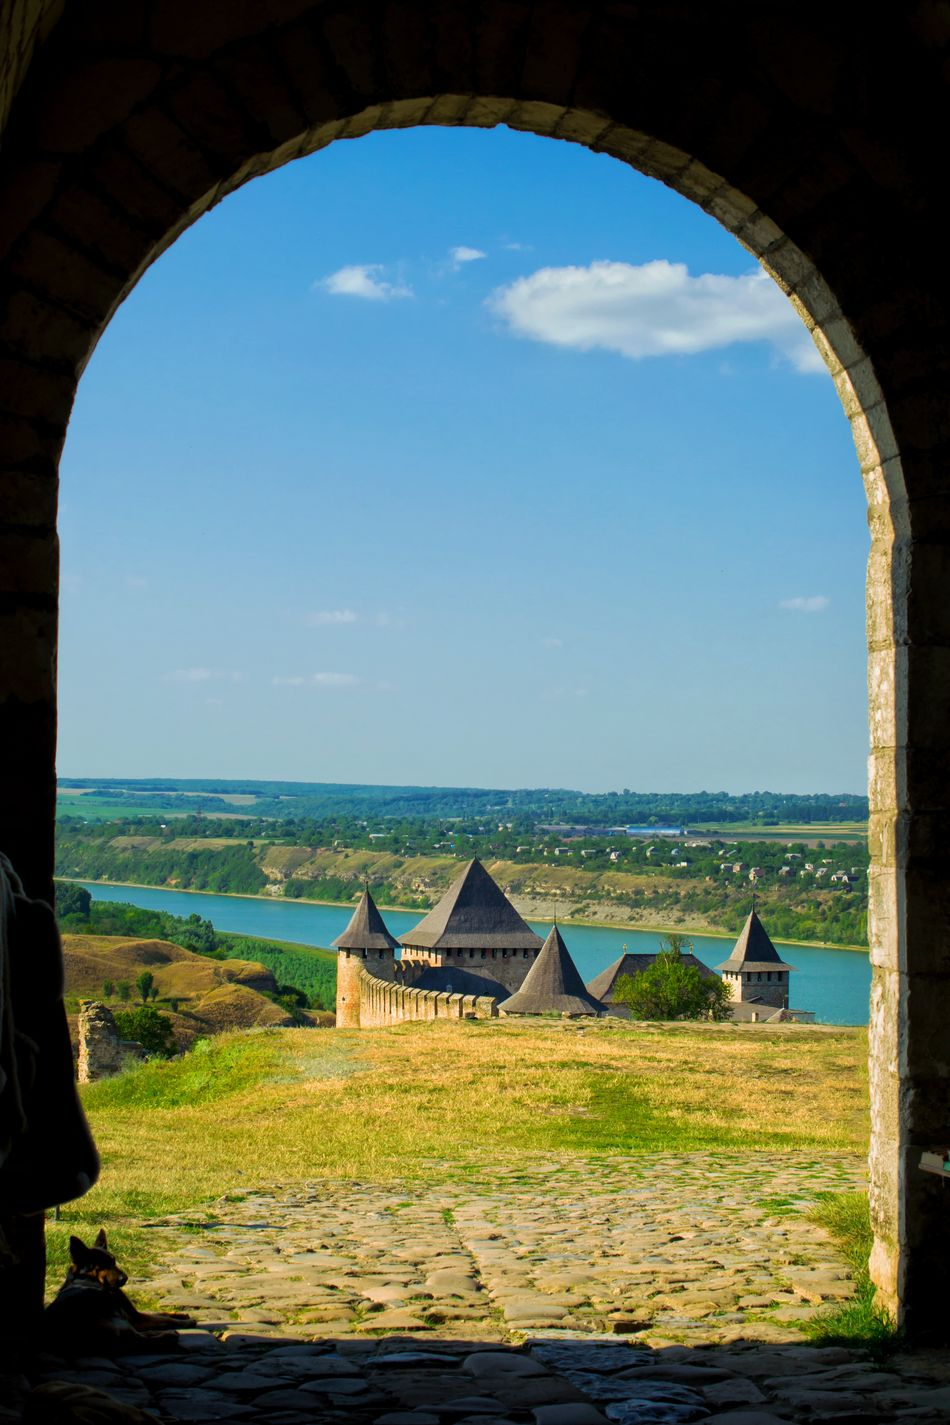 Khotyn fortress and Dnister riverside Architecture Built Structure Outdoors Building Exterior Khotyn Ukraine Dnister River View Fort Riverside River Panoramic Landscape Light And Shadow Summertime Riverscape Historical Place Landscape Bright Colors Backgrounds Summer Outdoor Photography Outdoor Rural Scene Scenics Arch